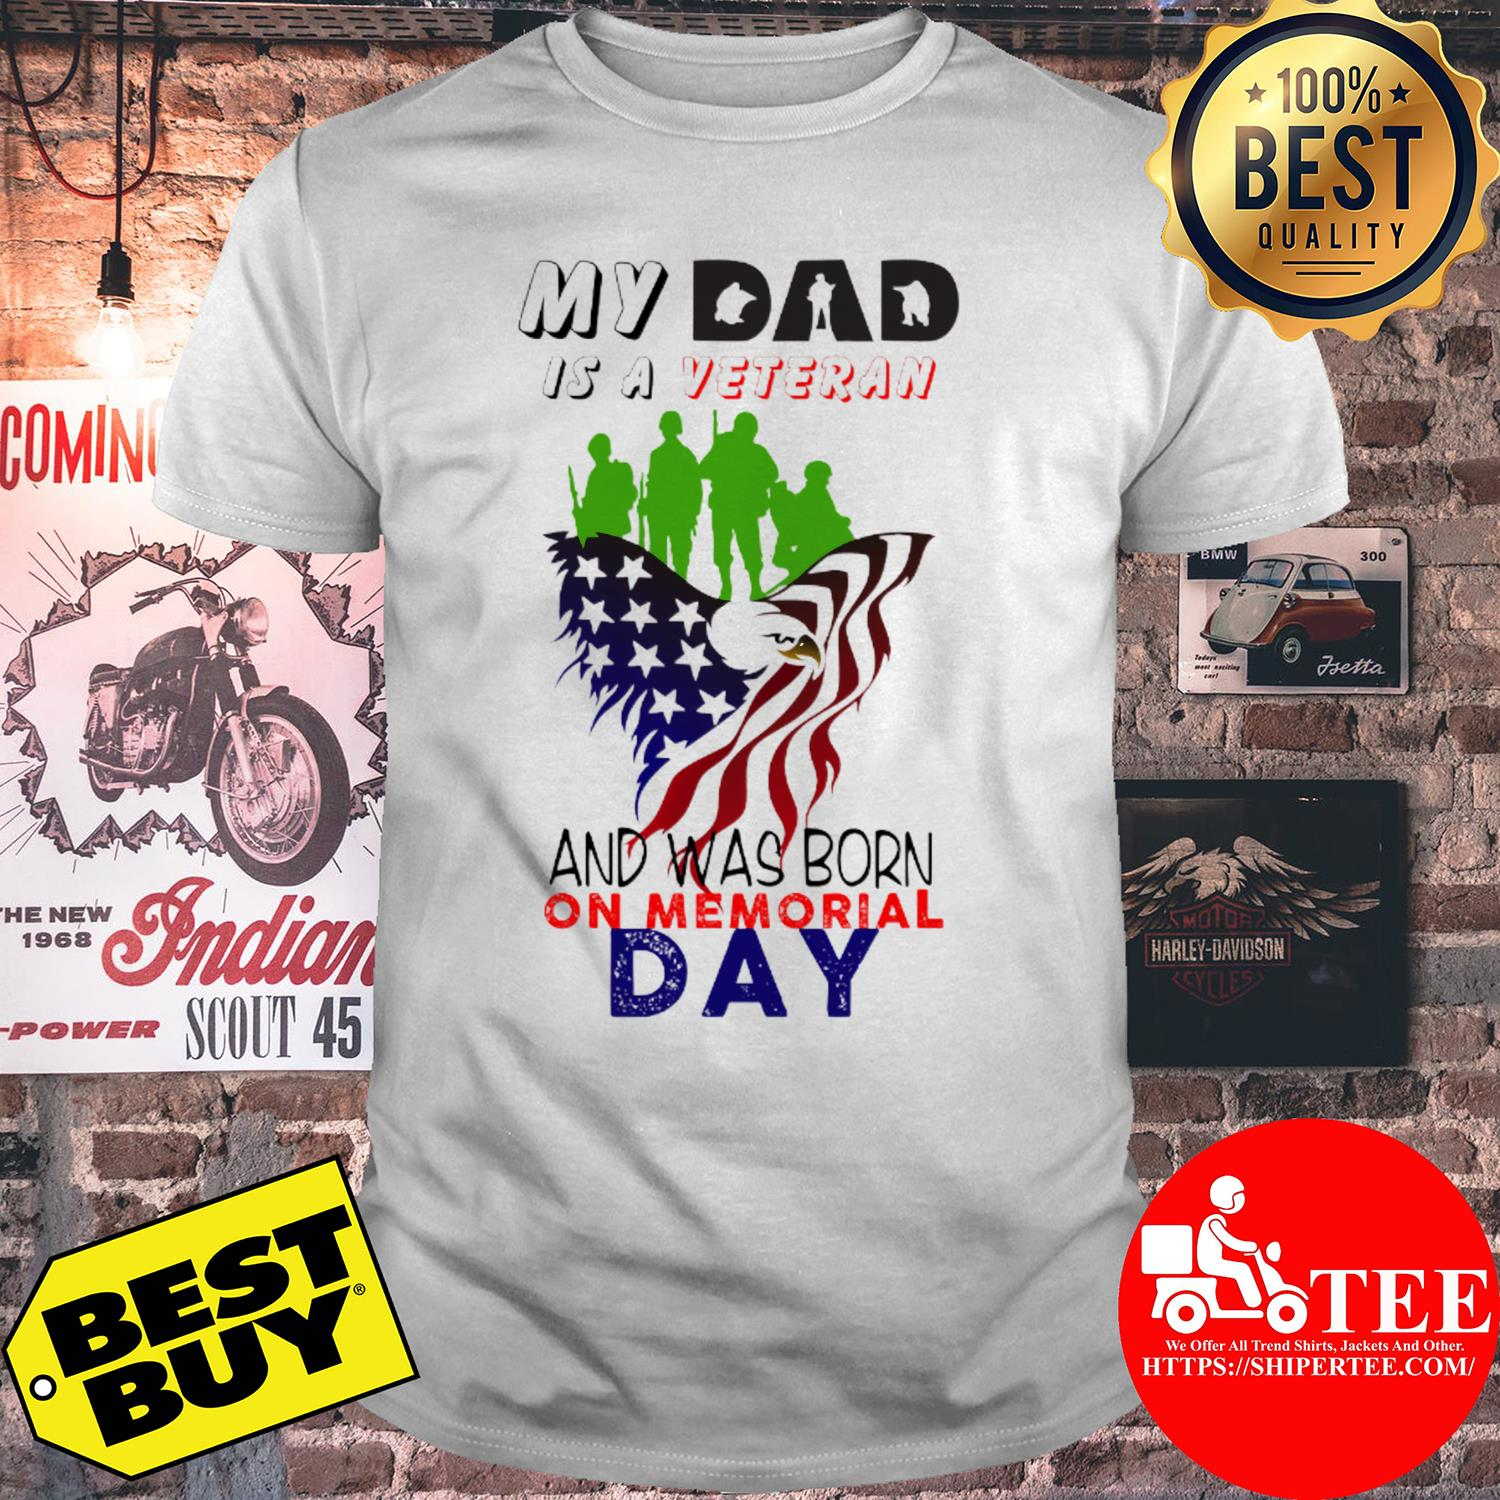 My dad is a veteran and was born on memorial day shirt